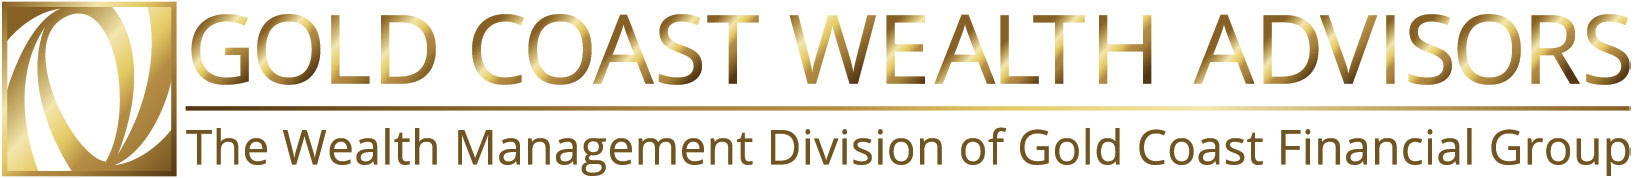 Gold Coast Wealth Advisors